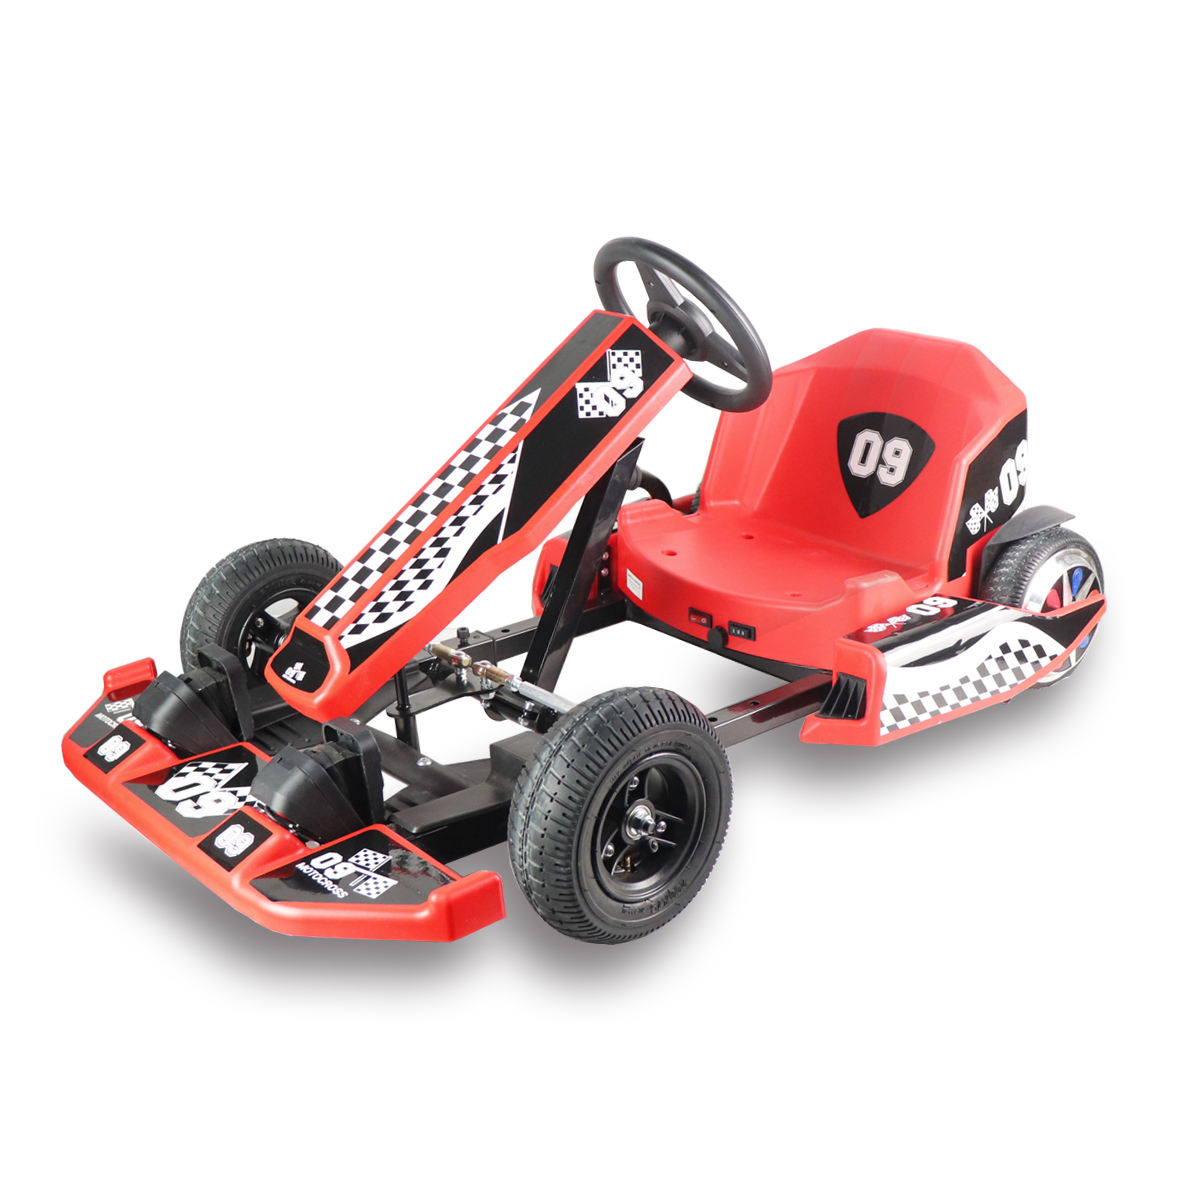 Hot sale multi-function outdoor electric children karting kids toy car/ children toy go kart